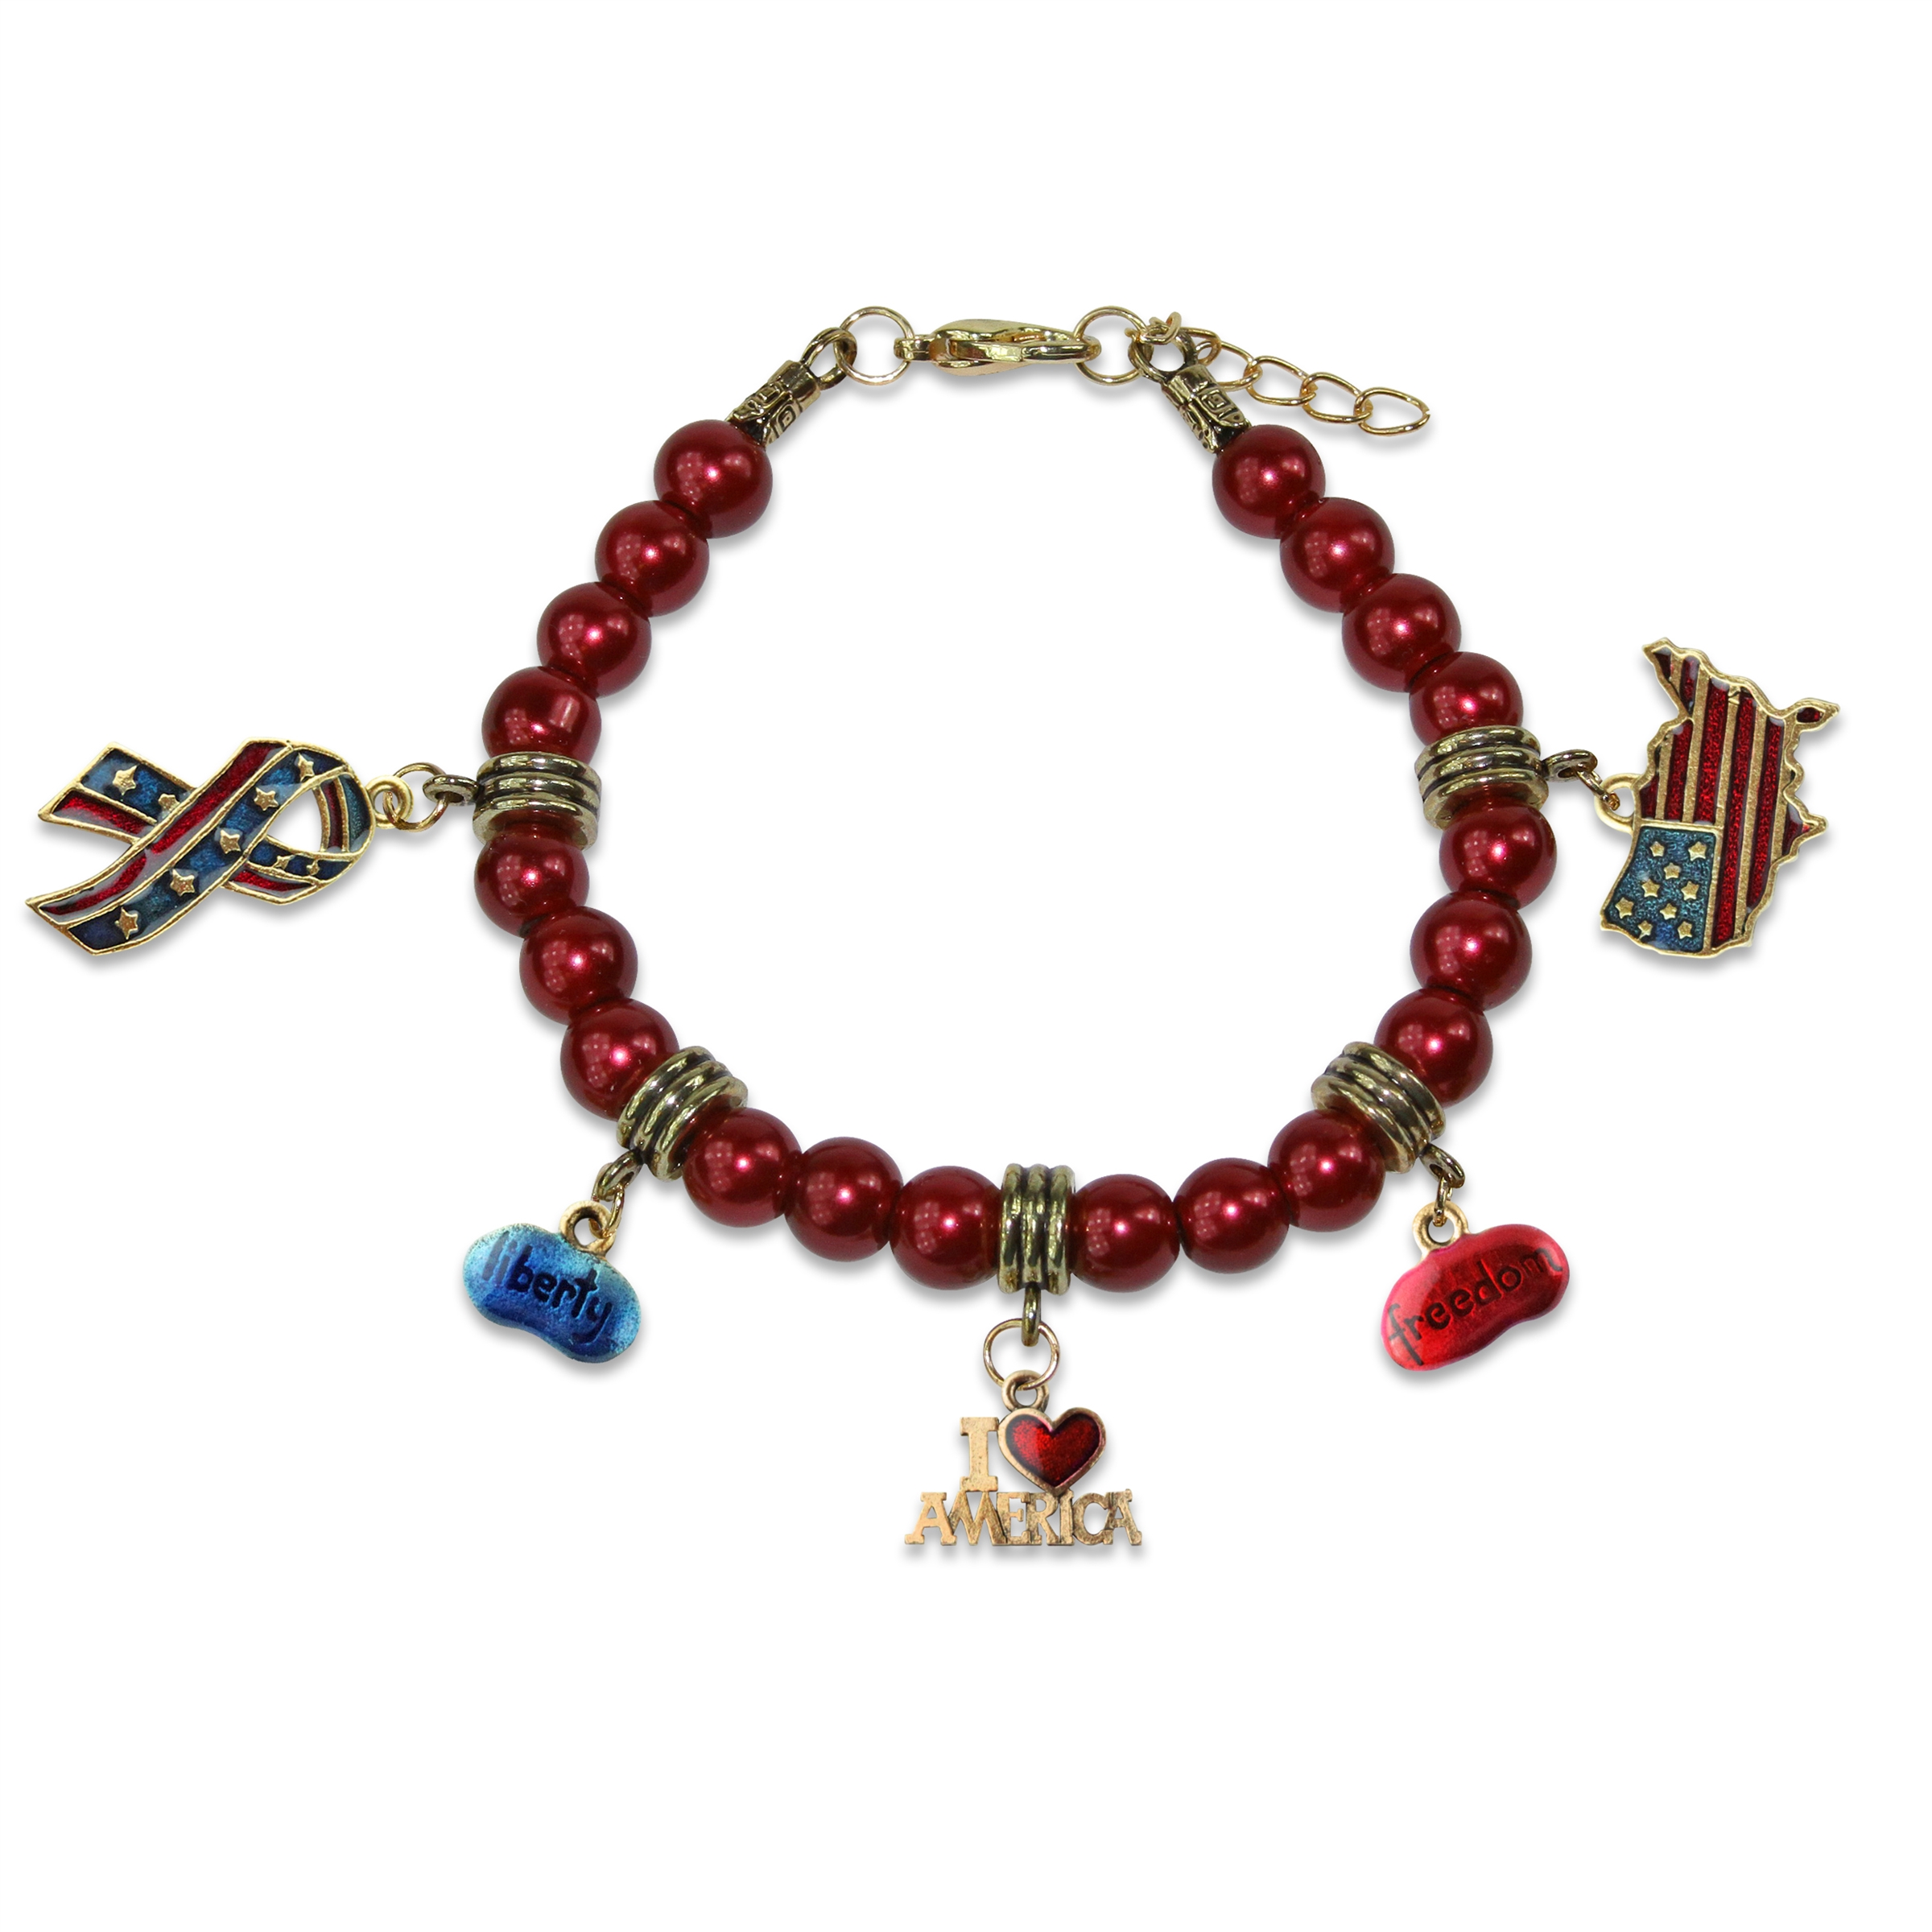 Image of American Patriotic 4th of July Charm Bracelet in Gold